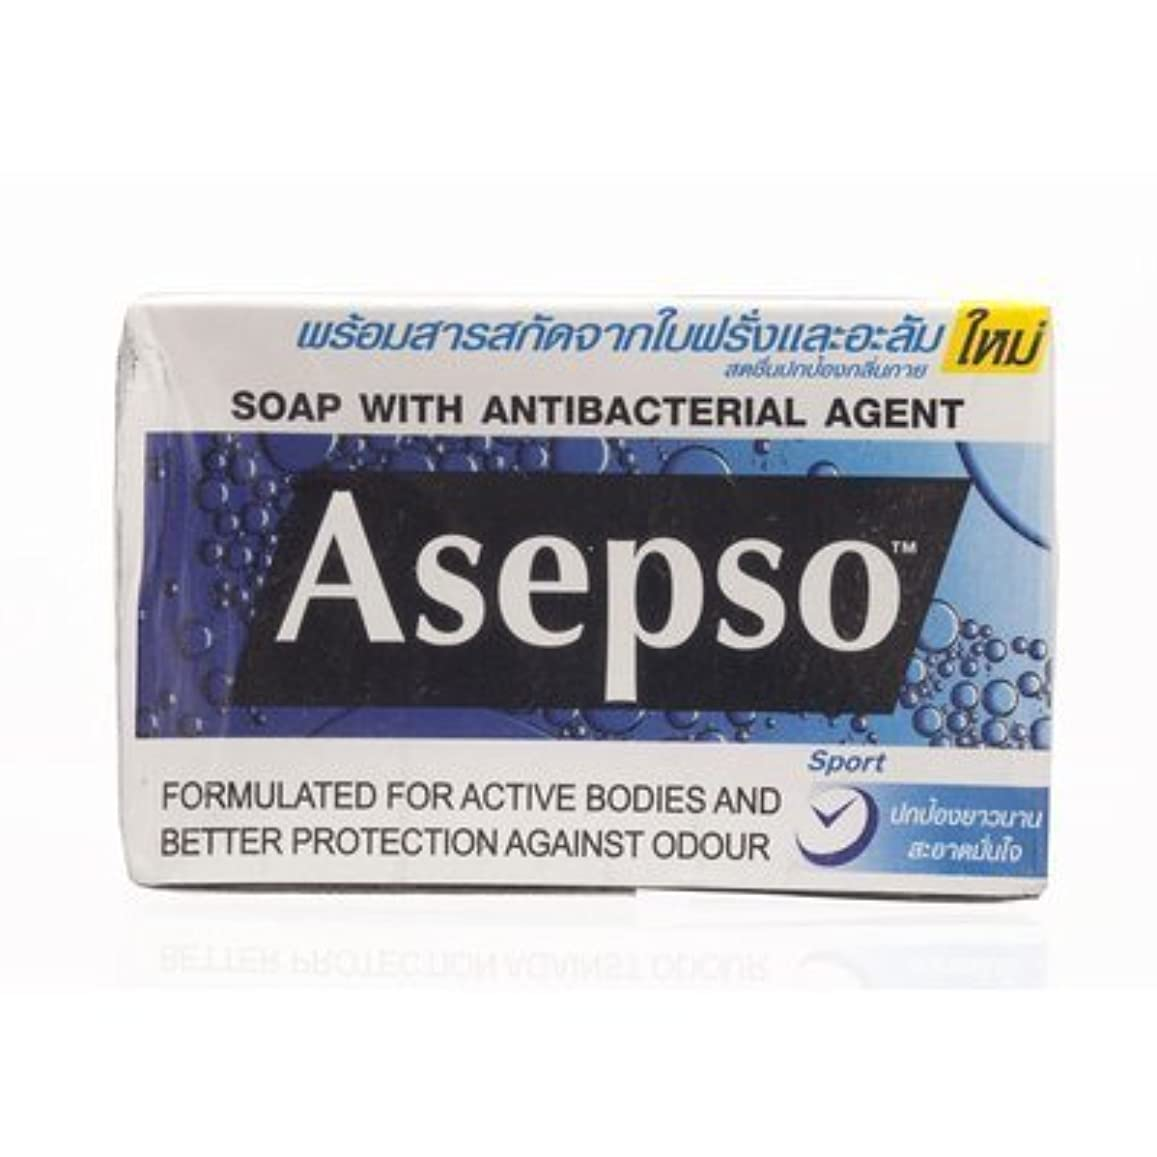 端宇宙の壮大Asepso Bar Soap Sport 80g. (Pack of 6) by Asepso [並行輸入品]